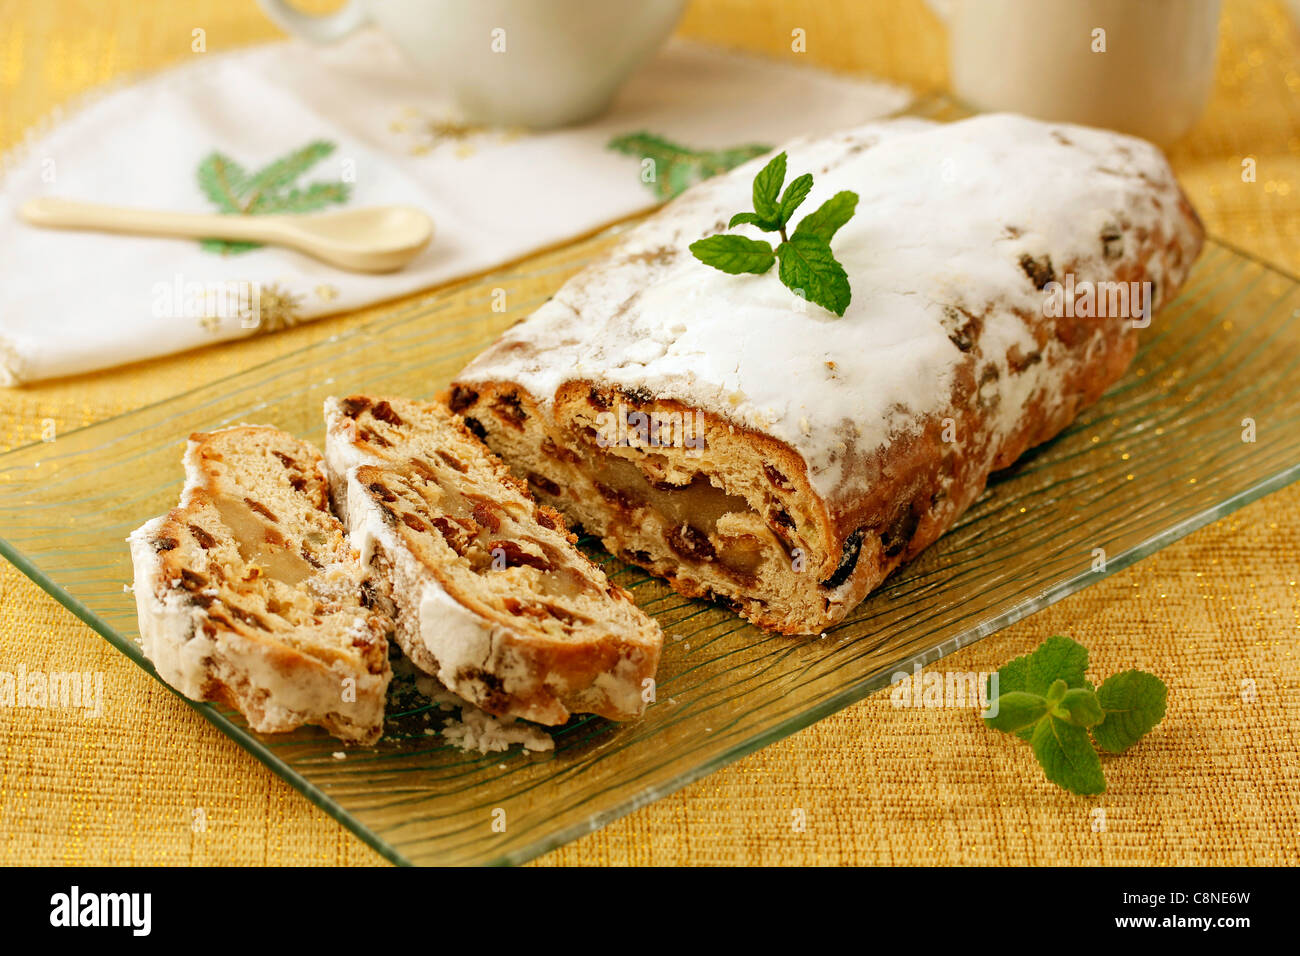 Marzipan with fruits. Recipe available. - Stock Image